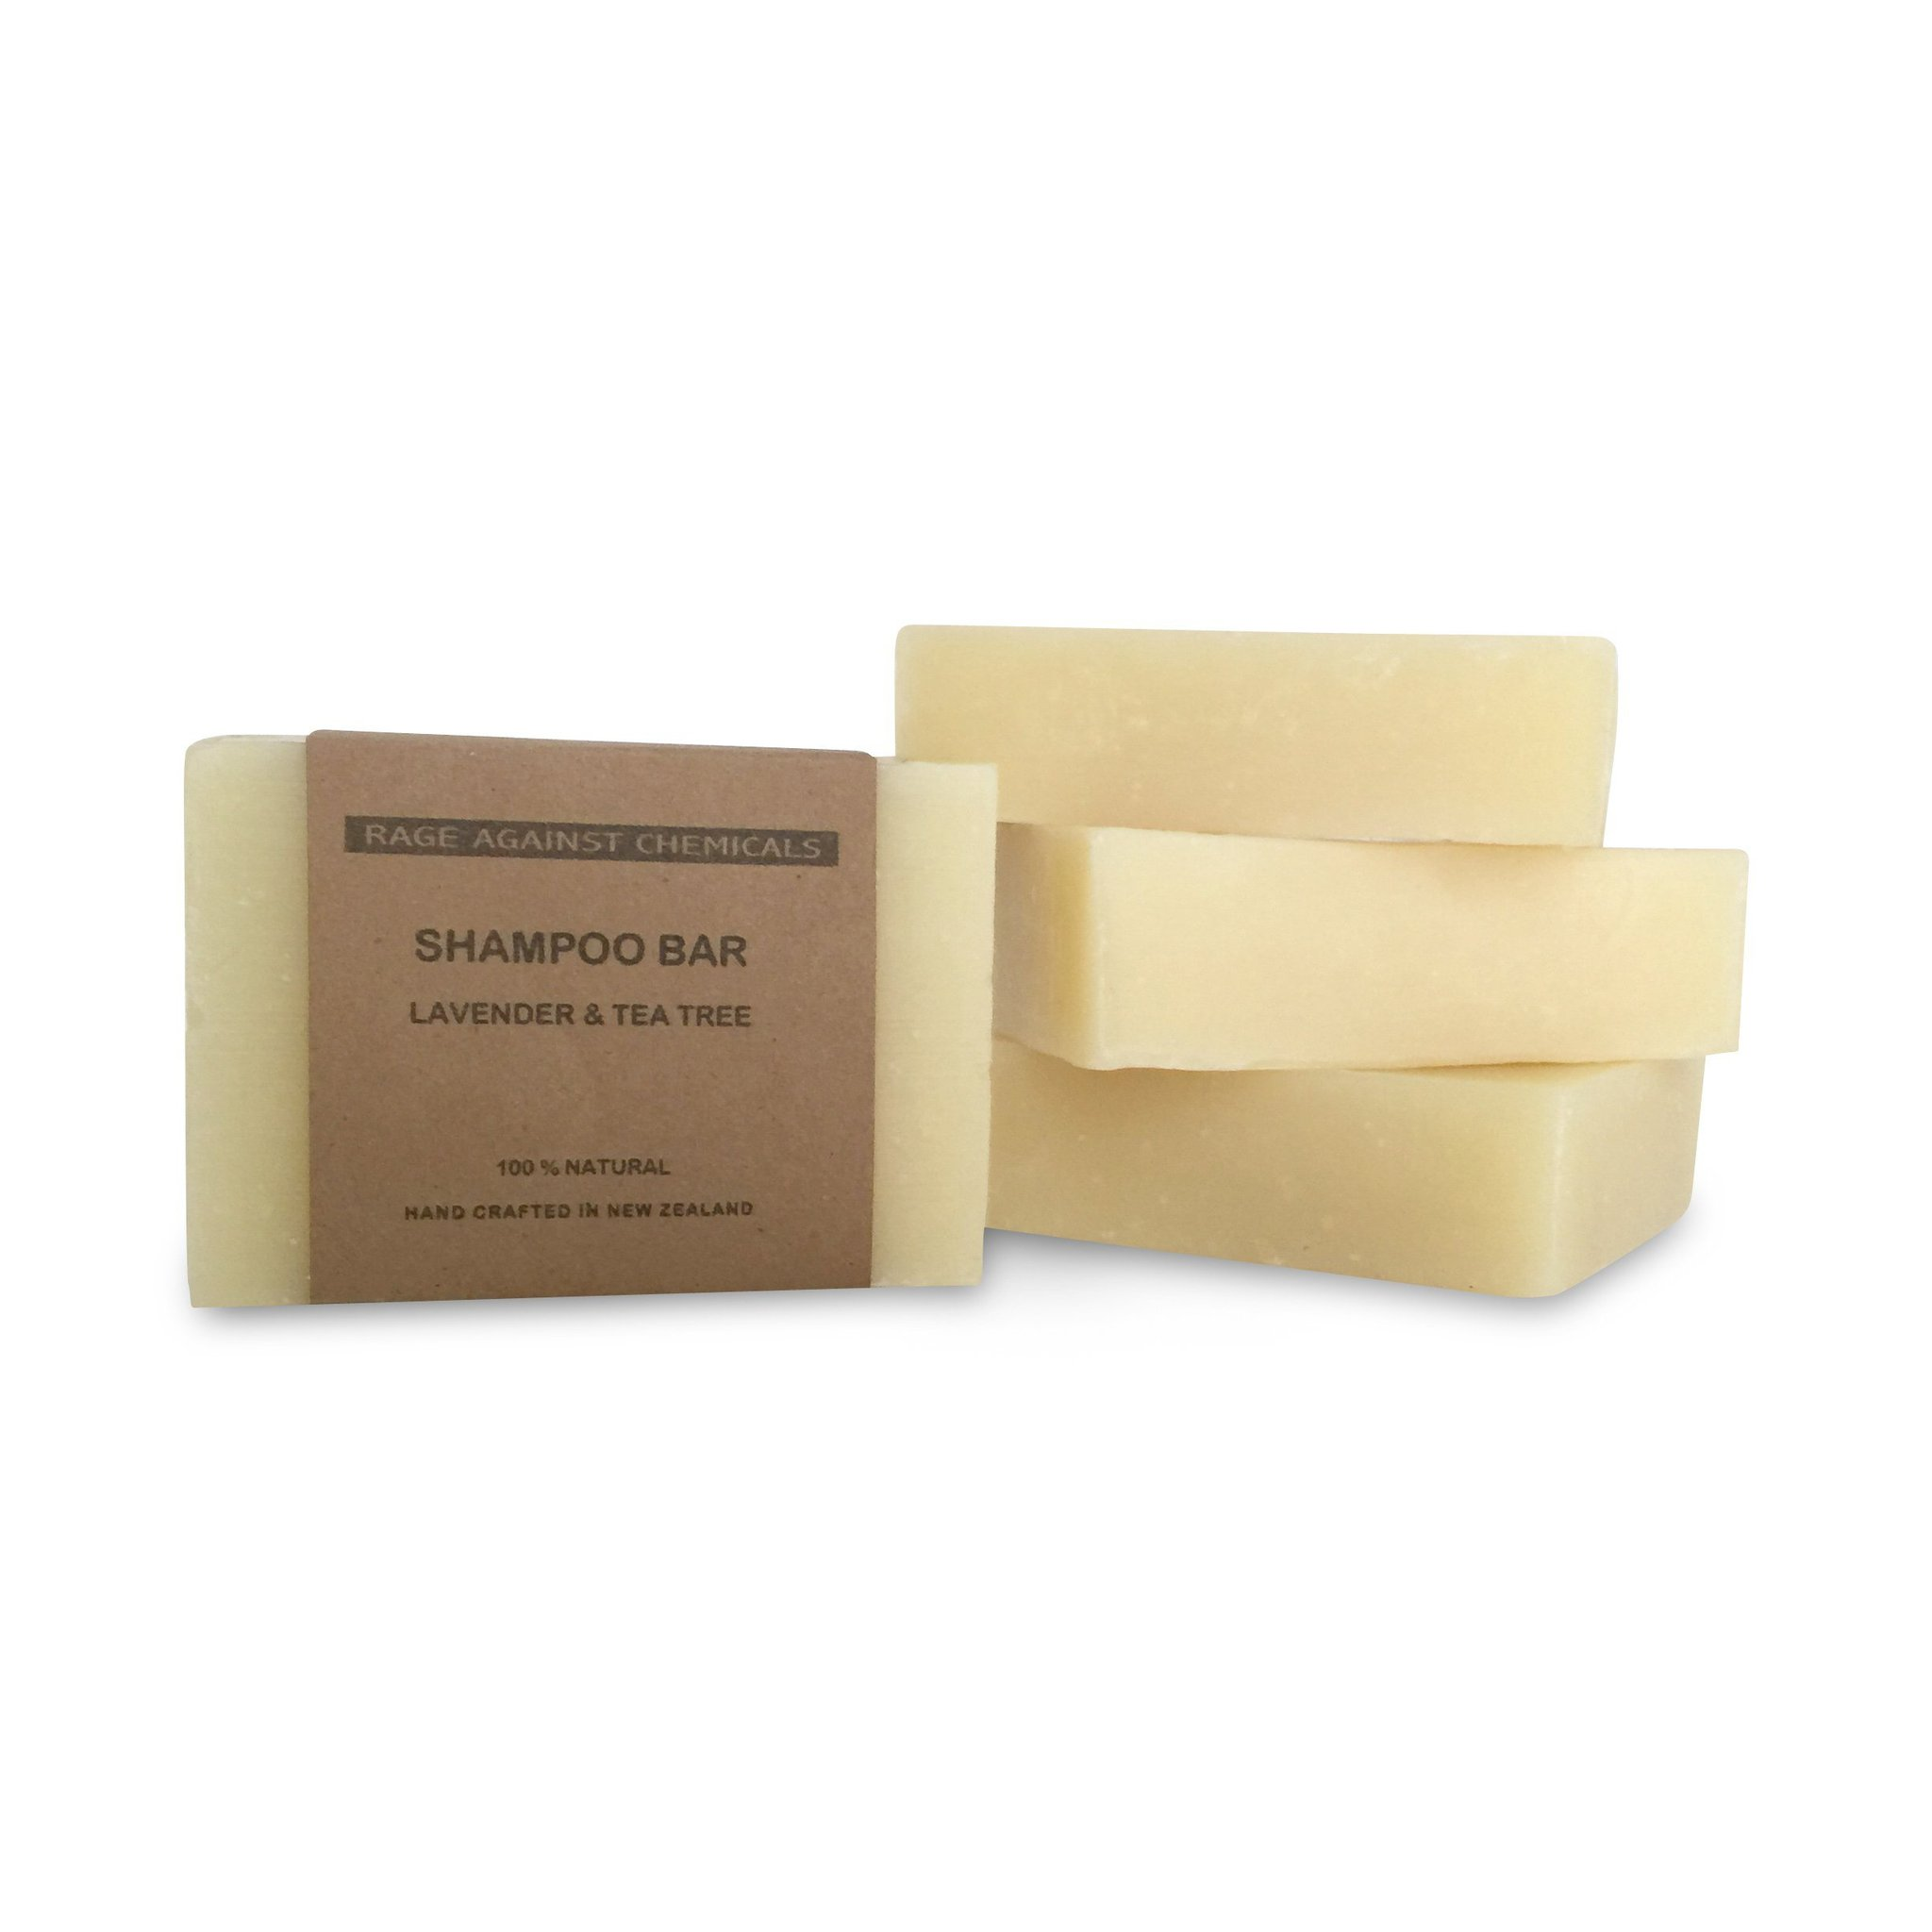 Shampoo Bar - Lavender & Tea Tree 100g